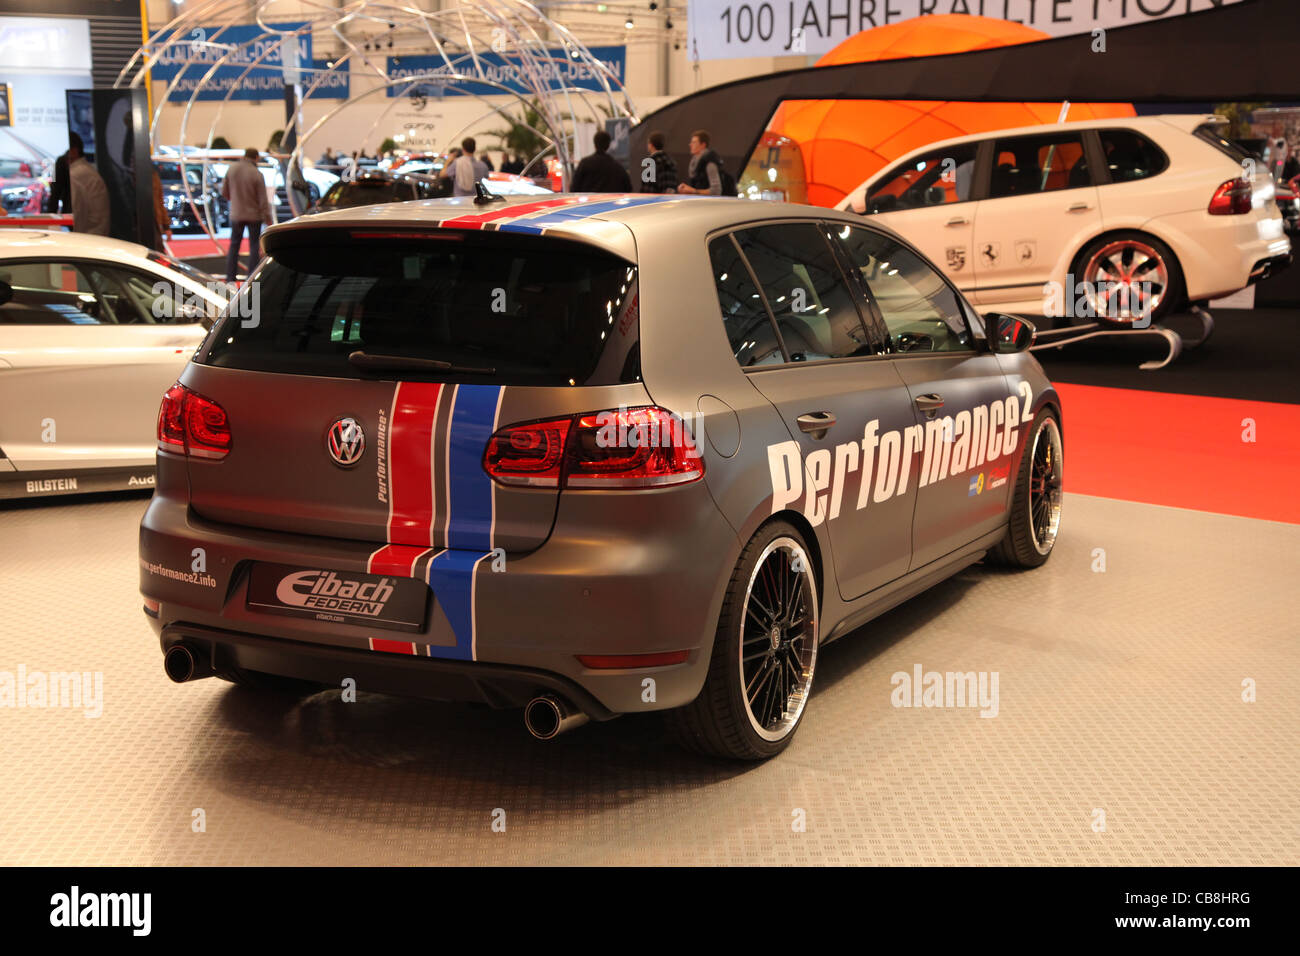 VW Golf GTI from Performance2 shown at the Essen Motor Show in Essen, Germany, on November 29, 2011 - Stock Image